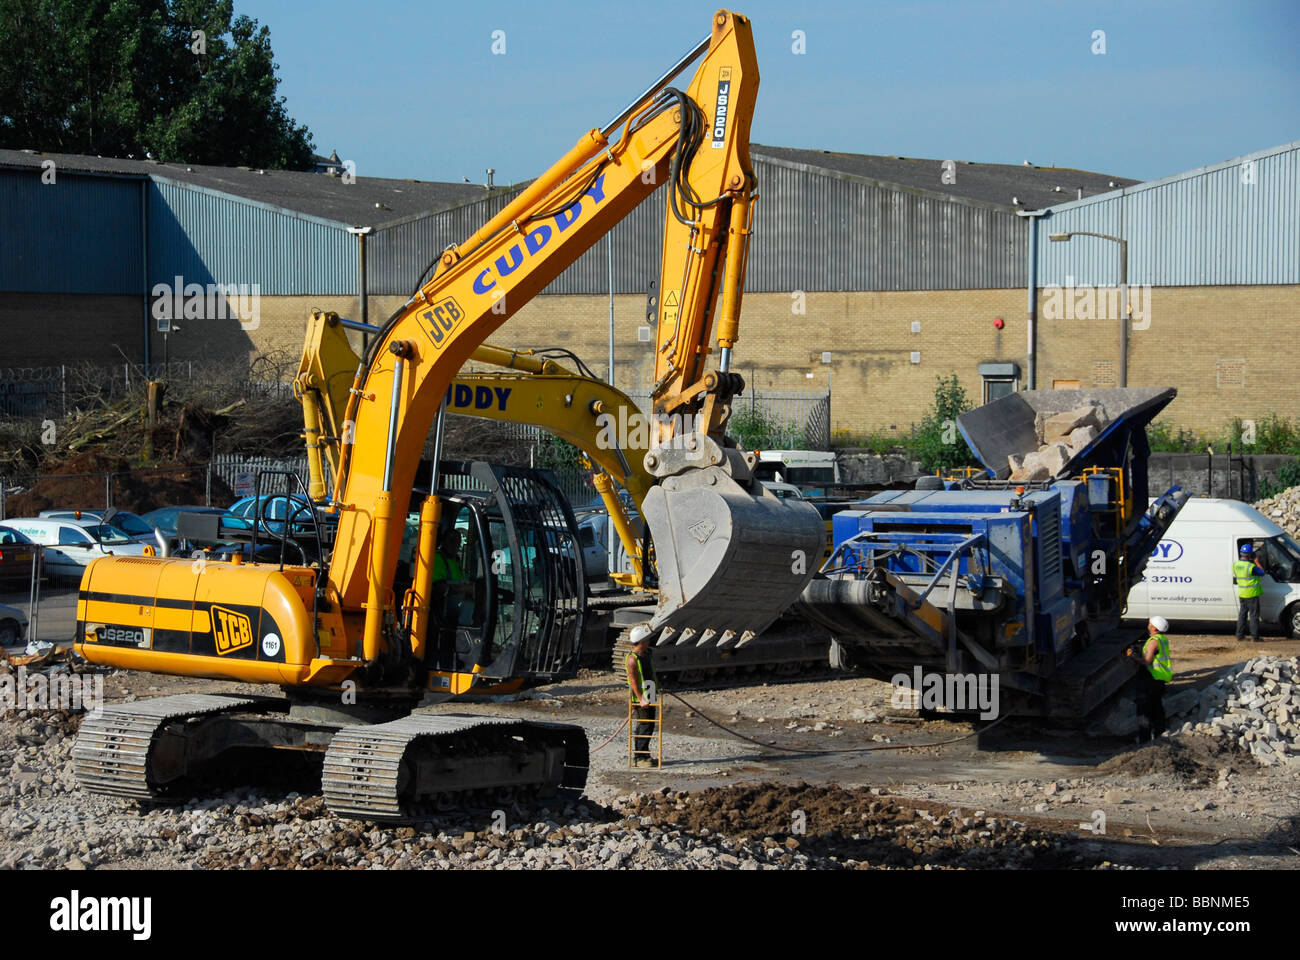 digger and concrete crusher - Stock Image